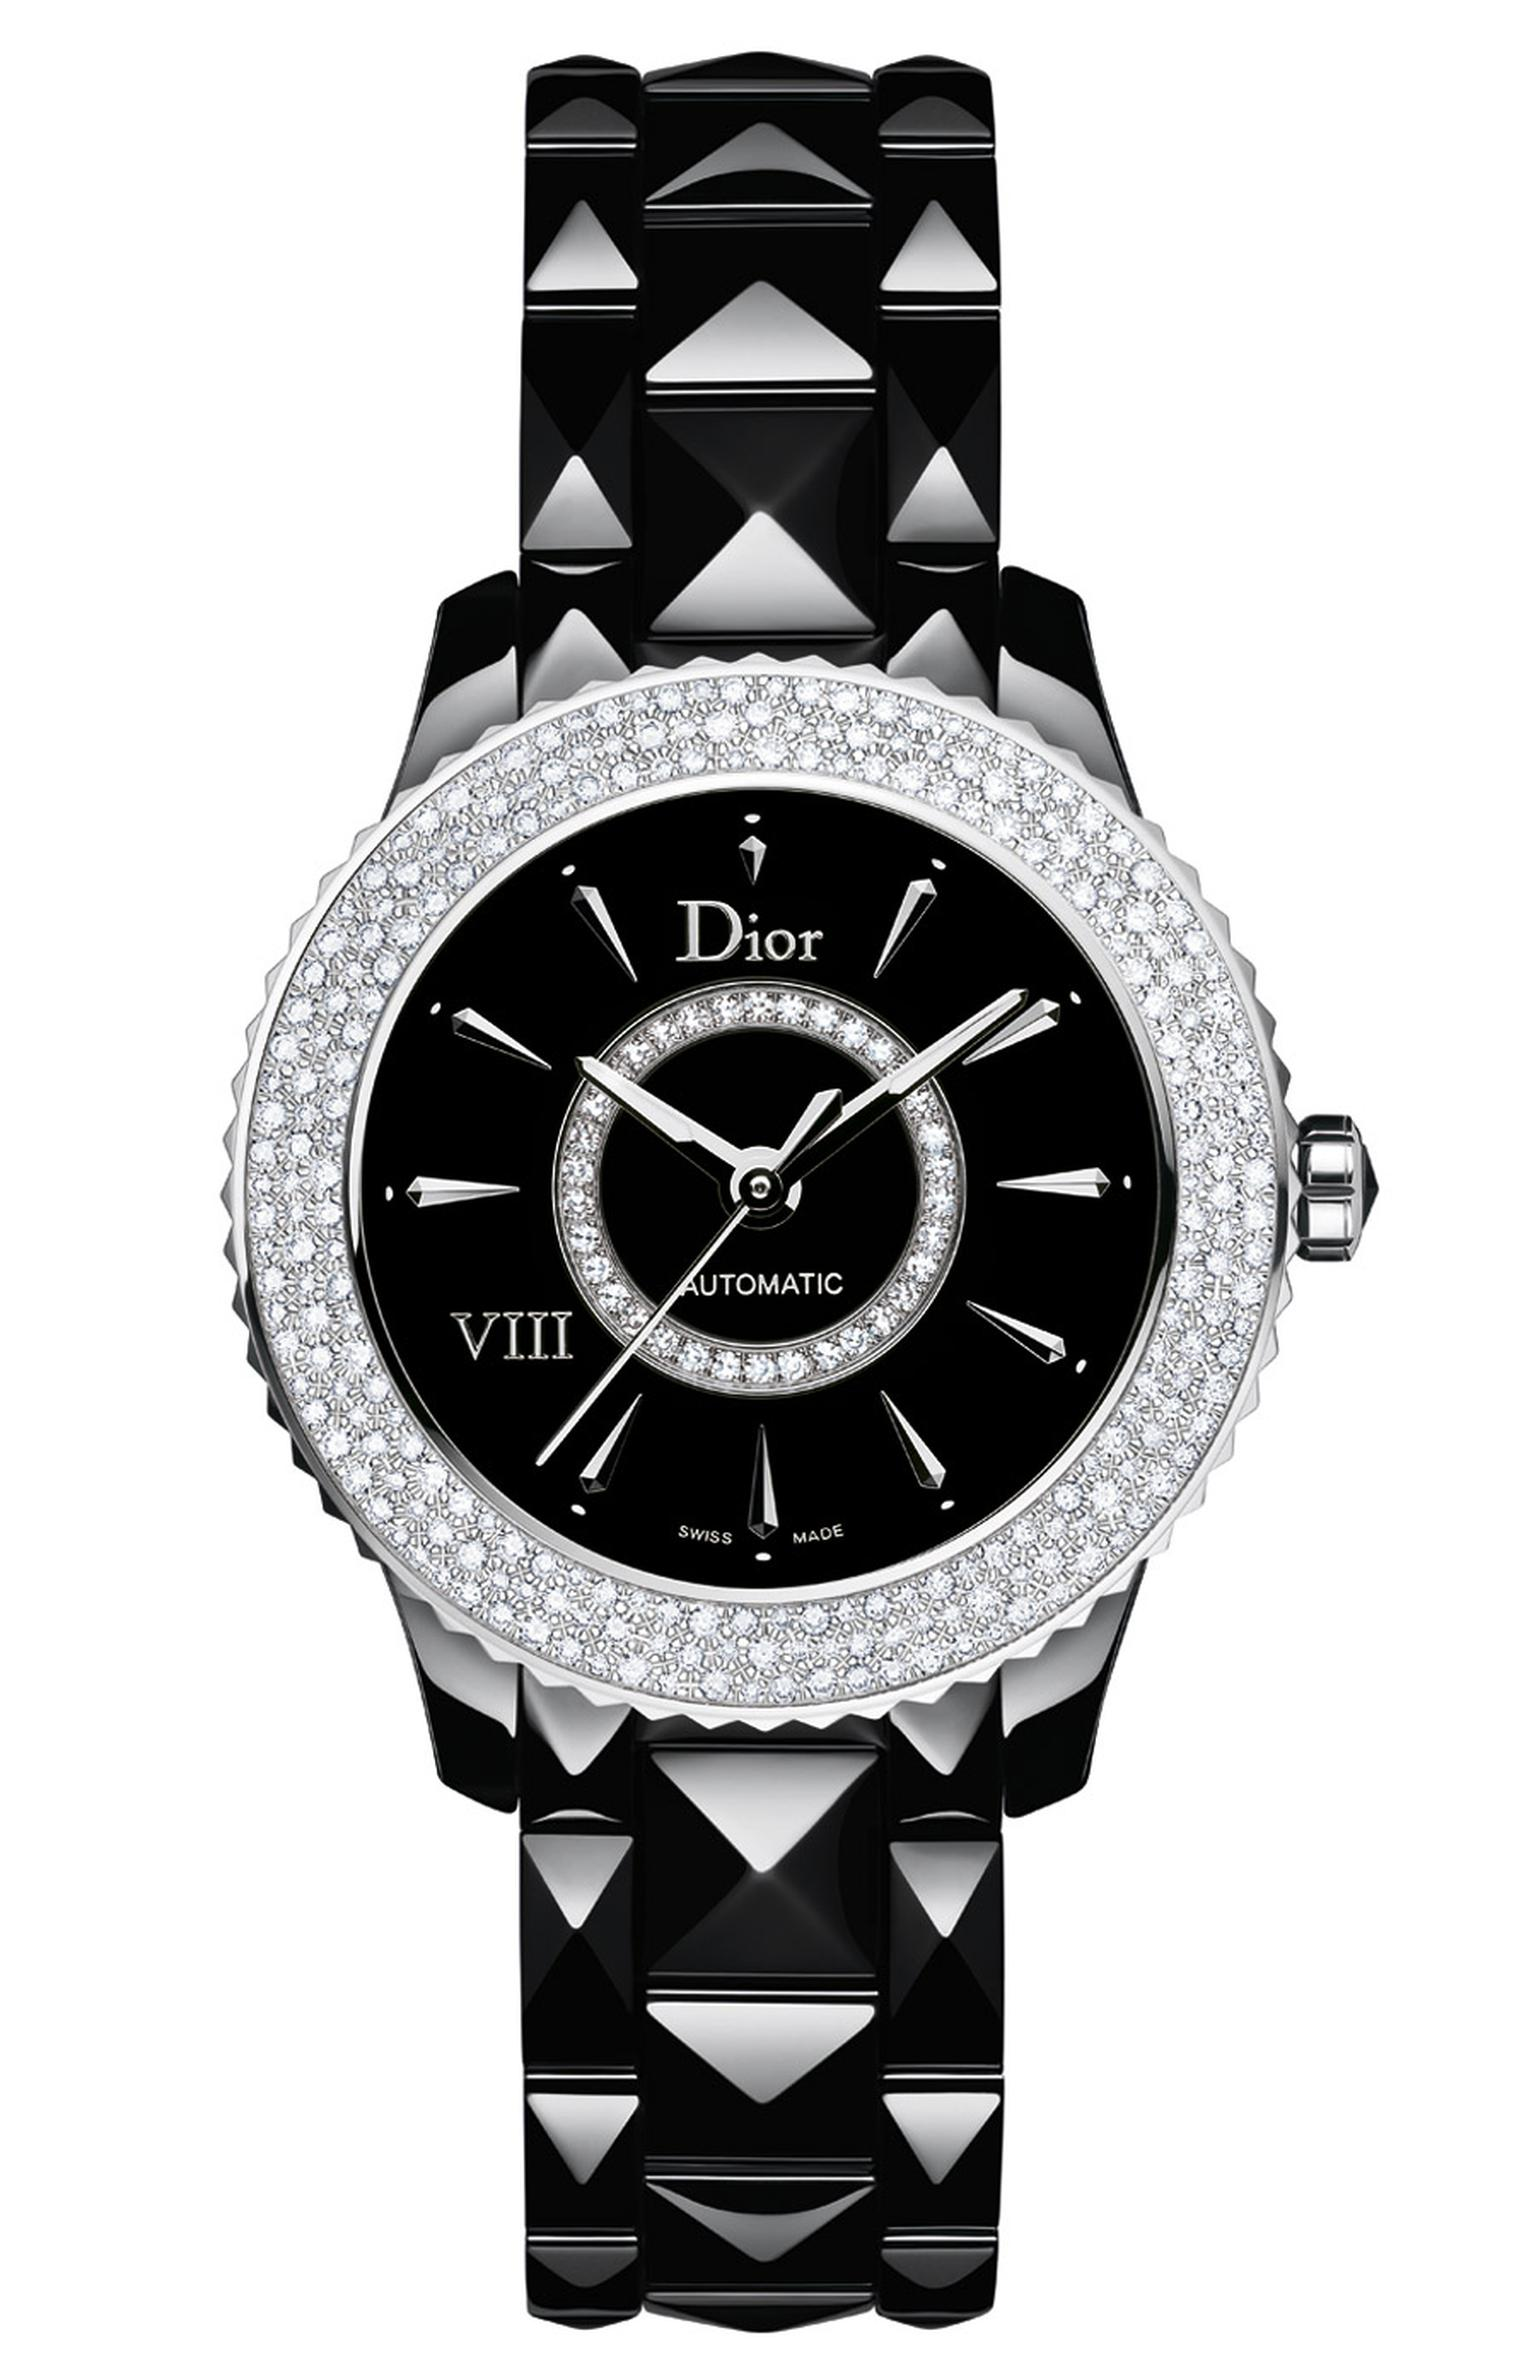 DIOR-VIII-BLACK-AUTO-DIAMOND-SNOW-SET-BEZEL-38mm